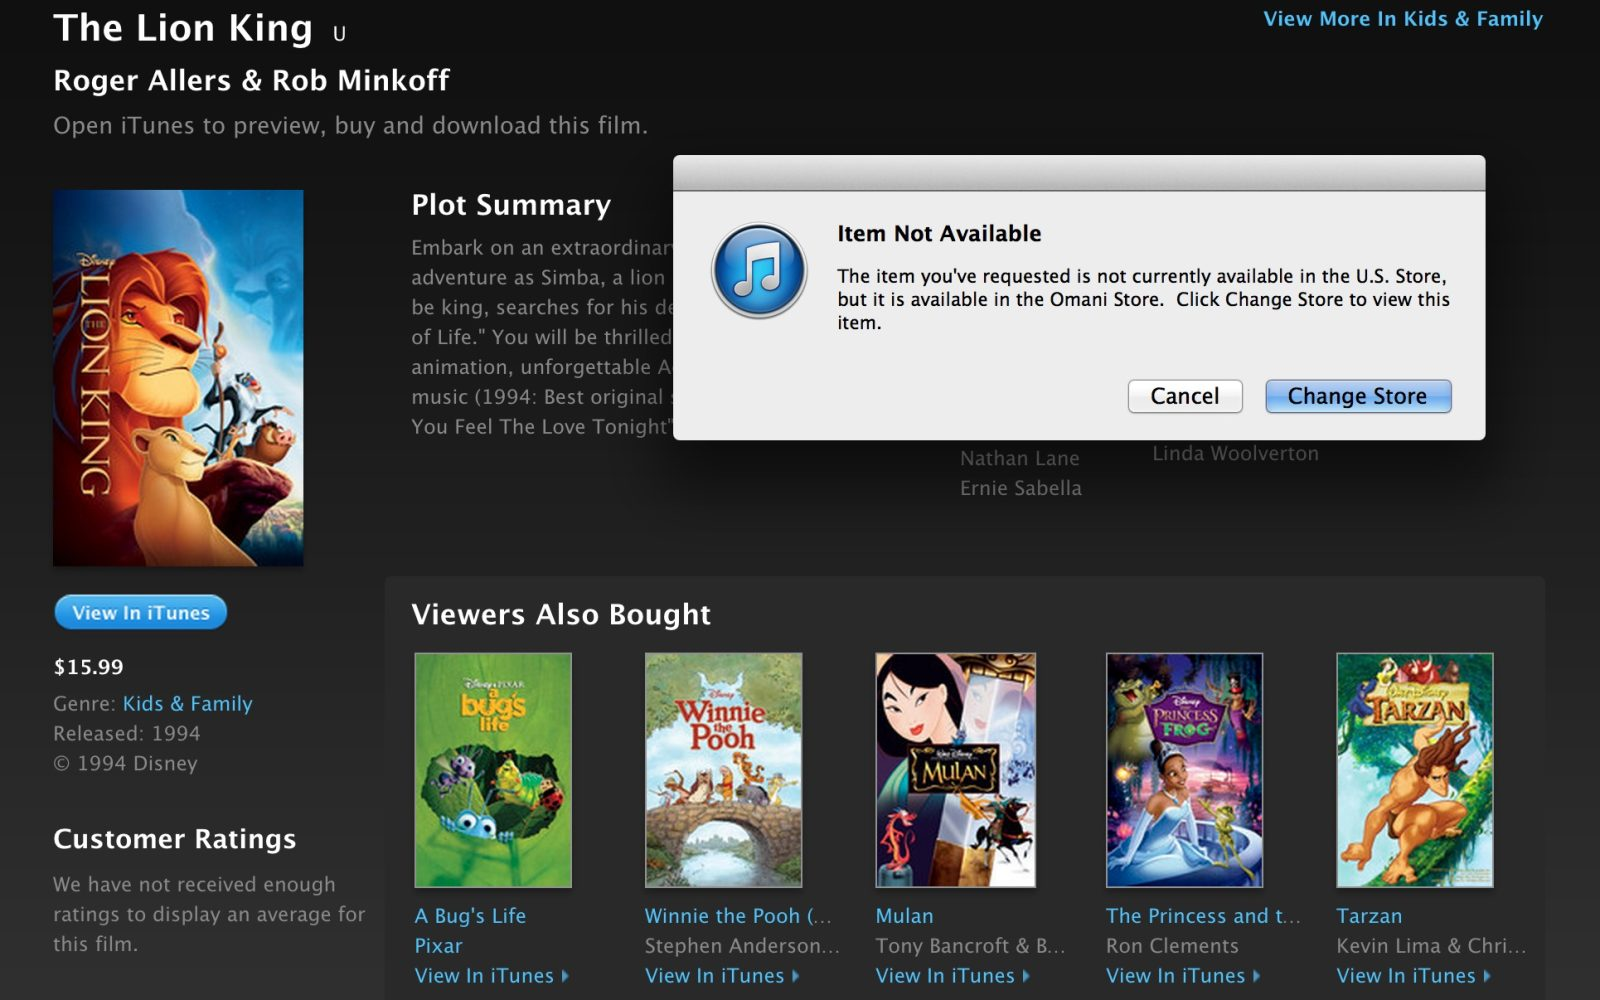 Some Disney and Pixar movies pulled from iTunes Store